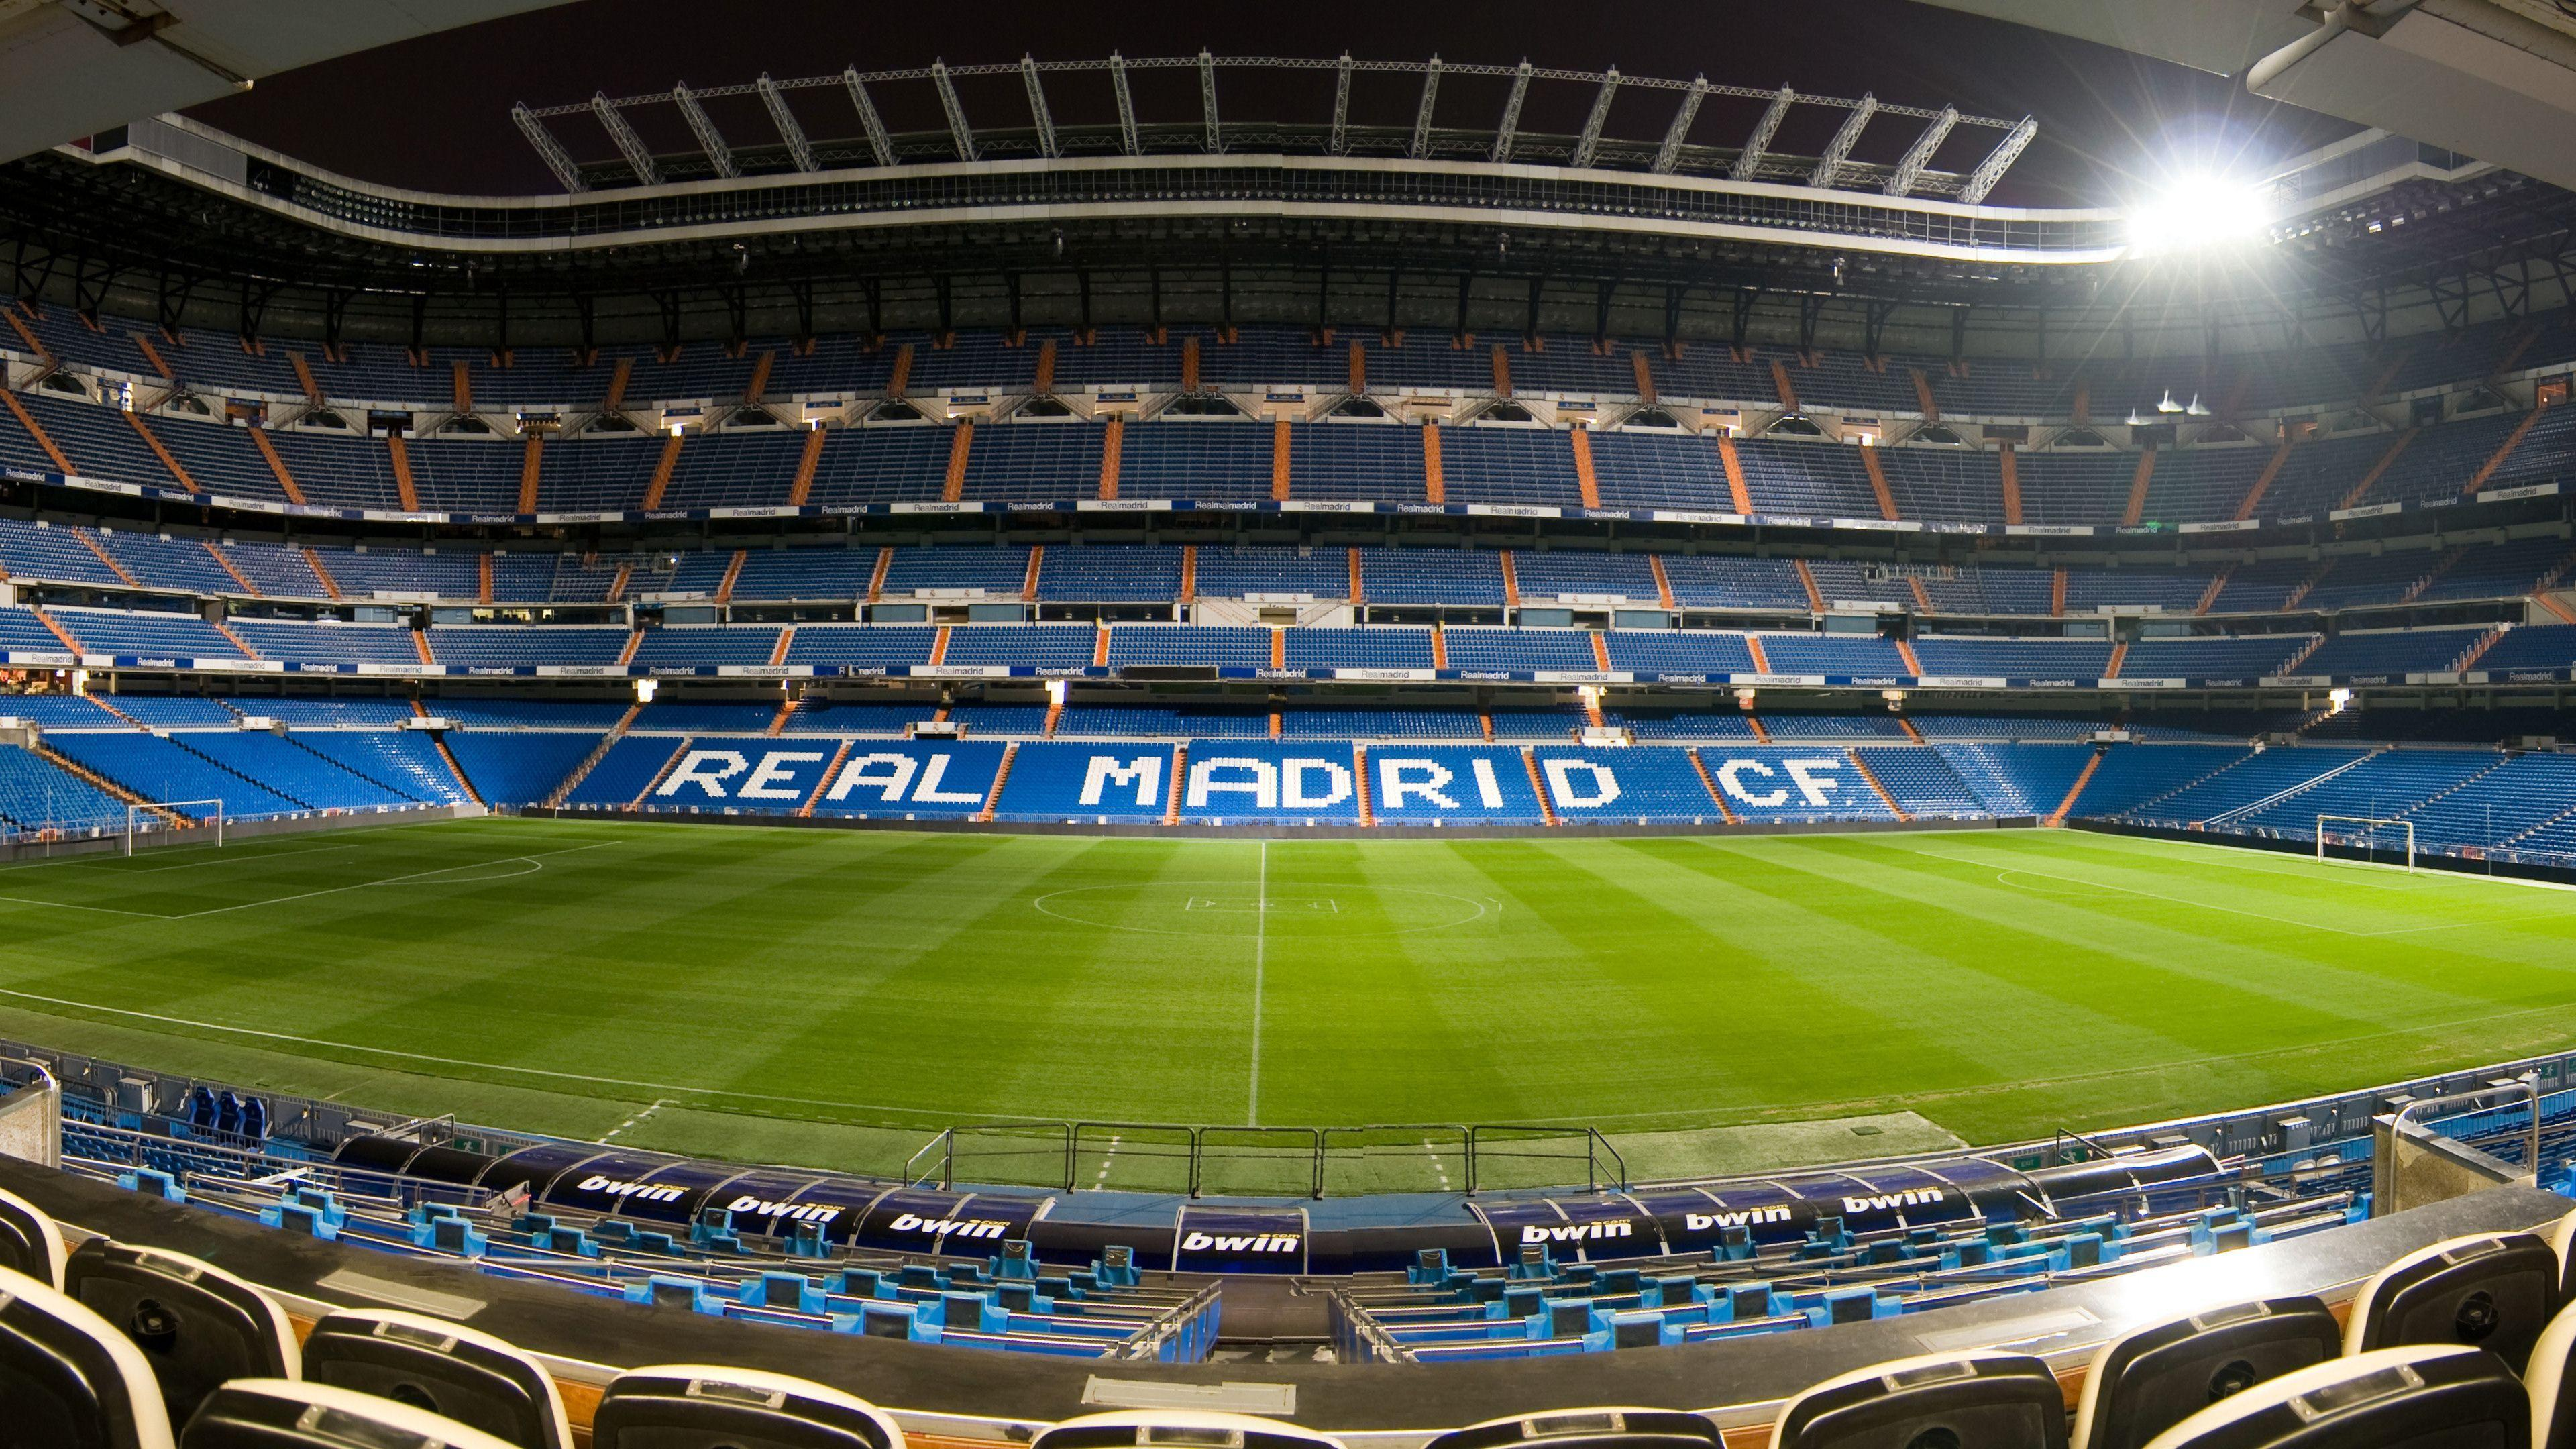 Real Madrid Stadium wallpapers hd | HD Wallpapers, Backgrounds ...